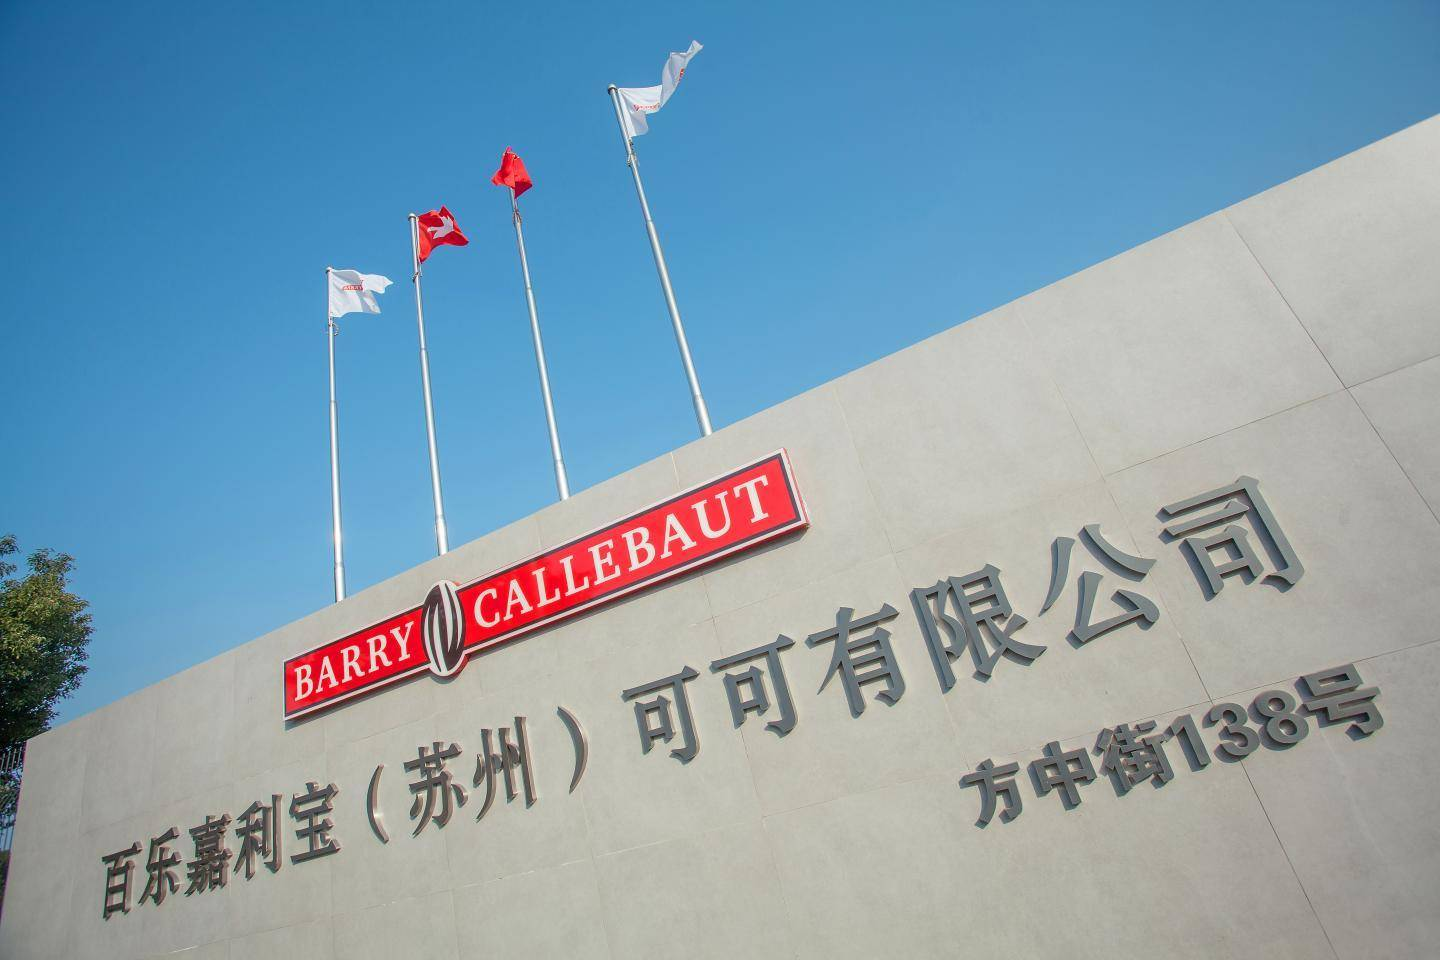 Barry Callebaut factory in China